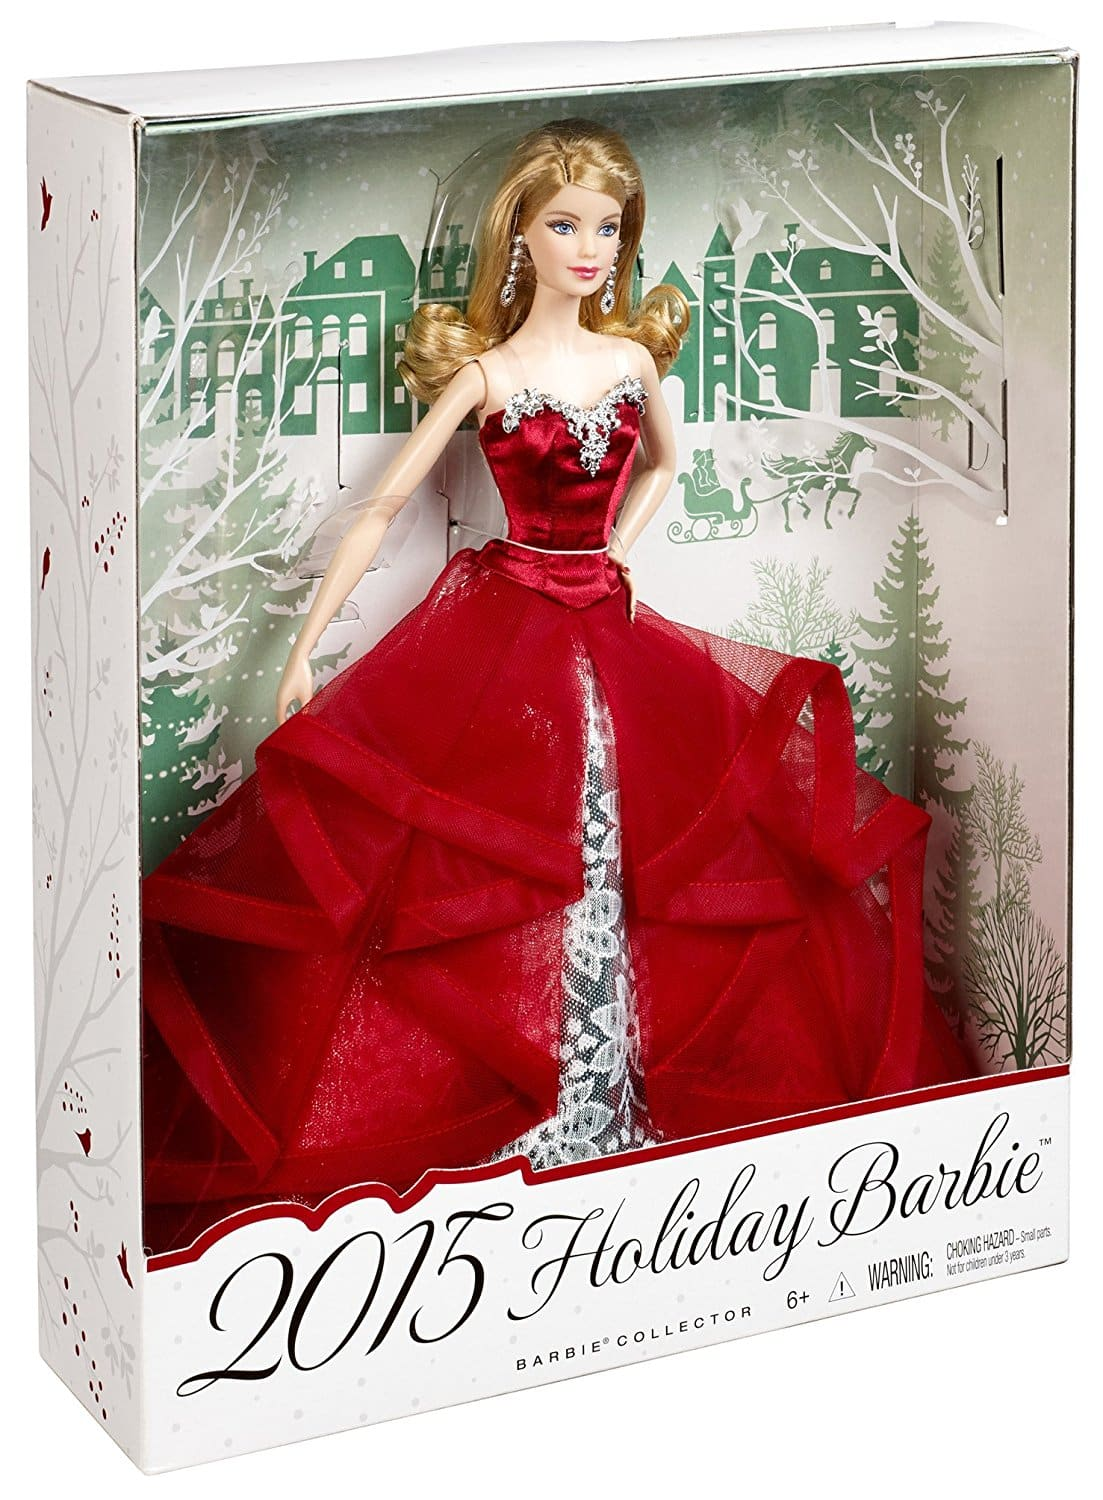 Barbie collector 2015 holiday caucasian doll barbie collectibles - Barbie barbie barbie barbie barbie ...